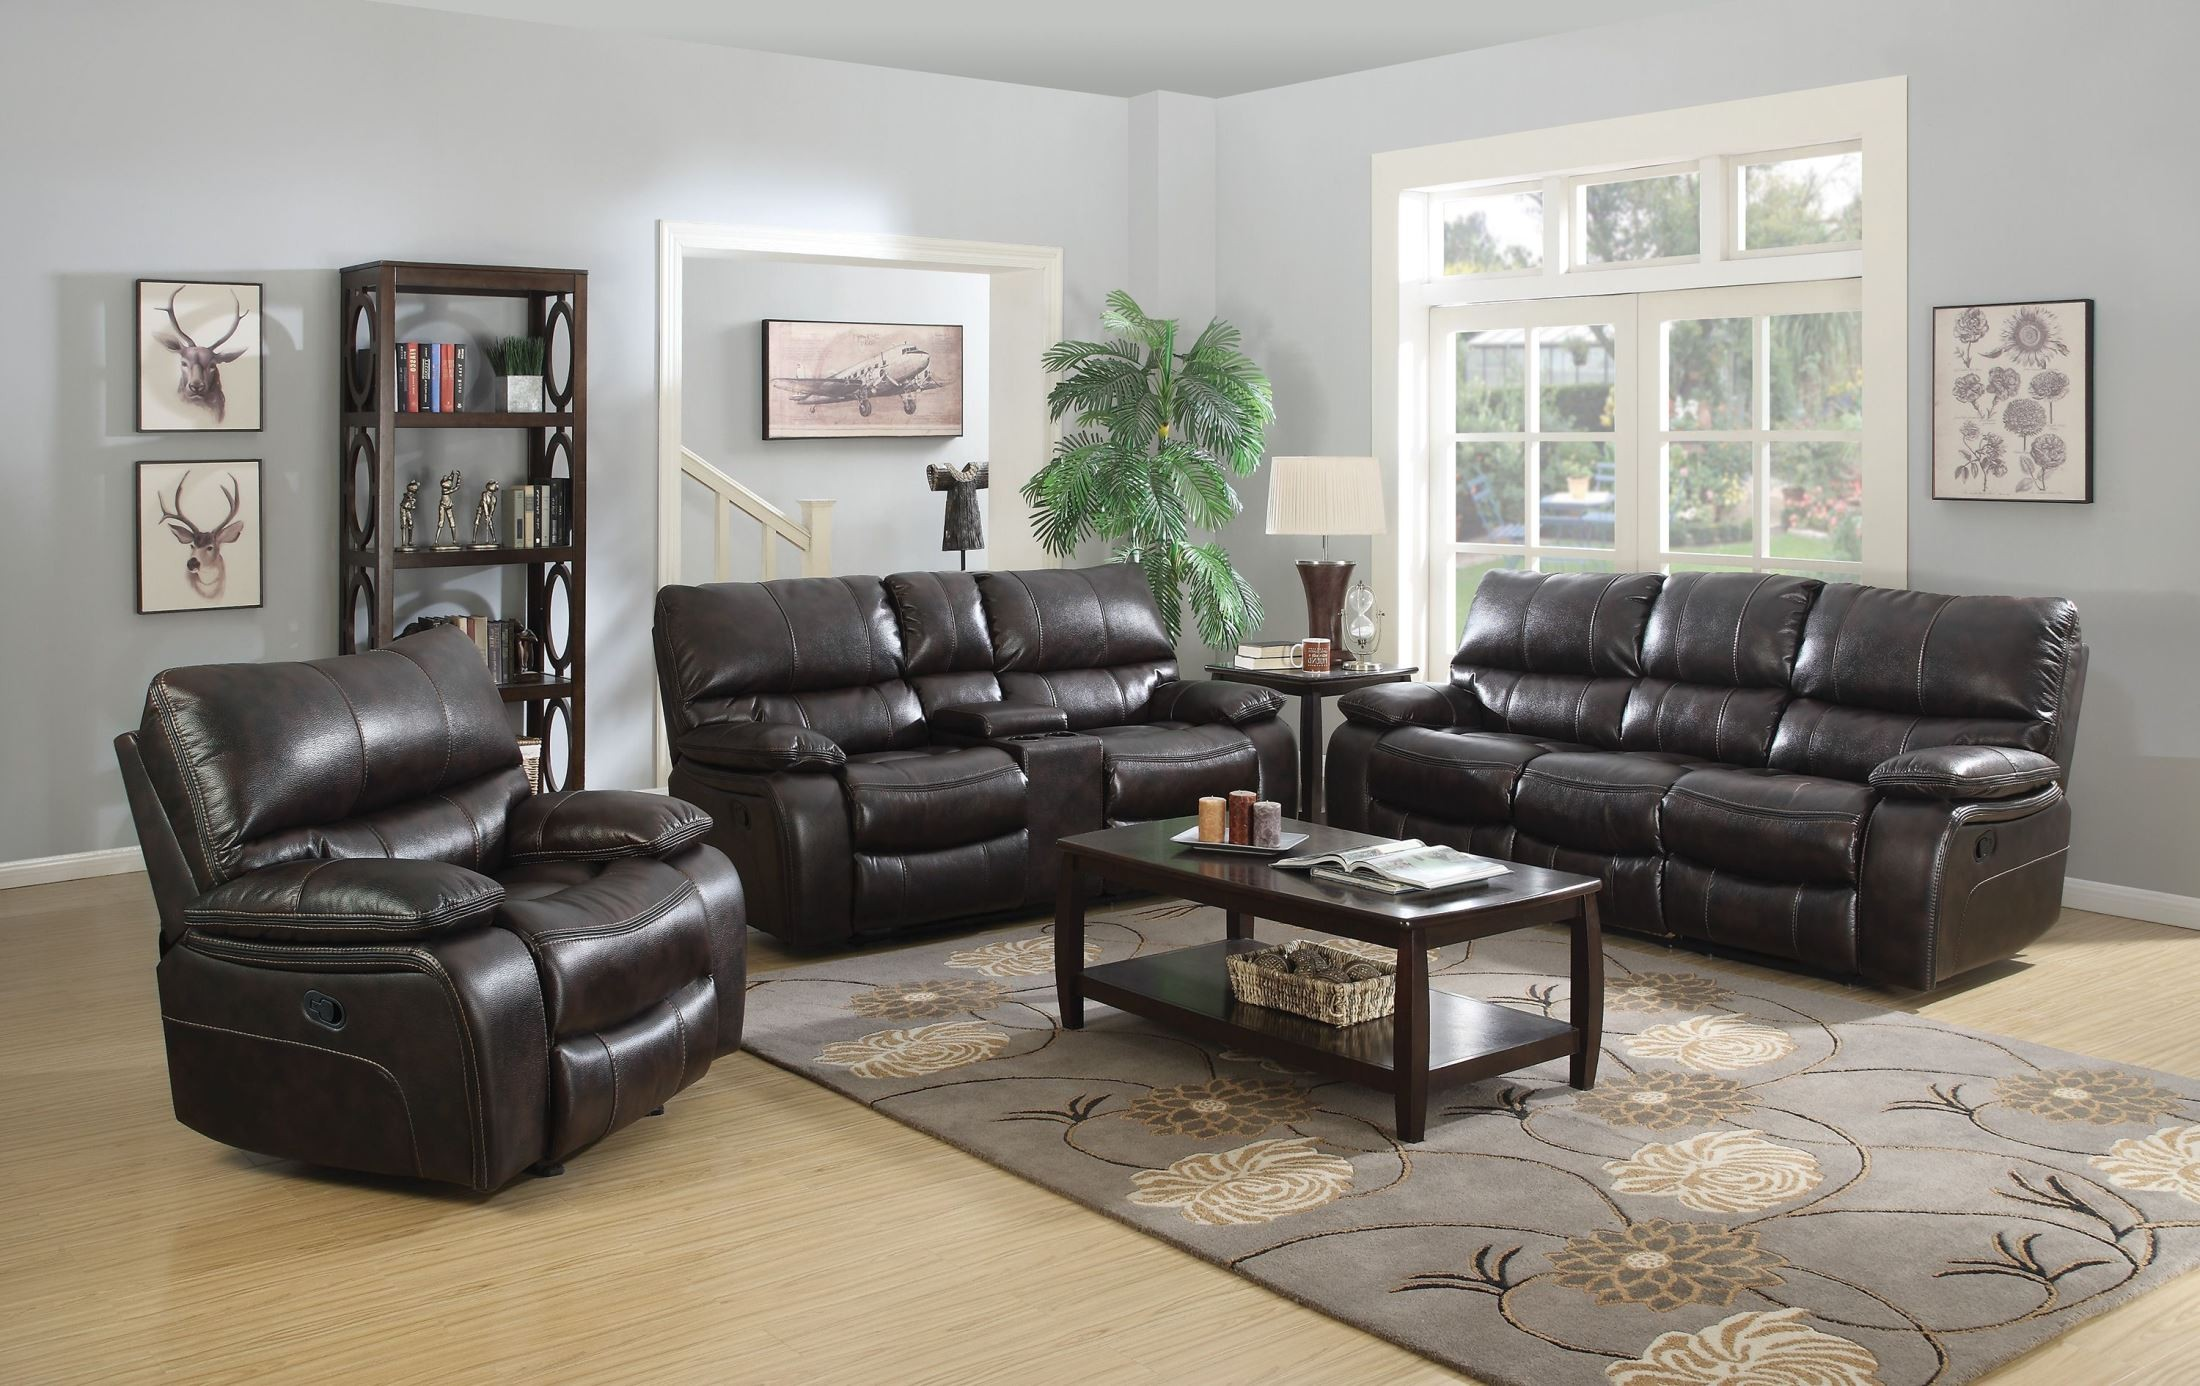 Stanton 3 piece living room set brown - Willemse Dark Brown Reclining Living Room Set